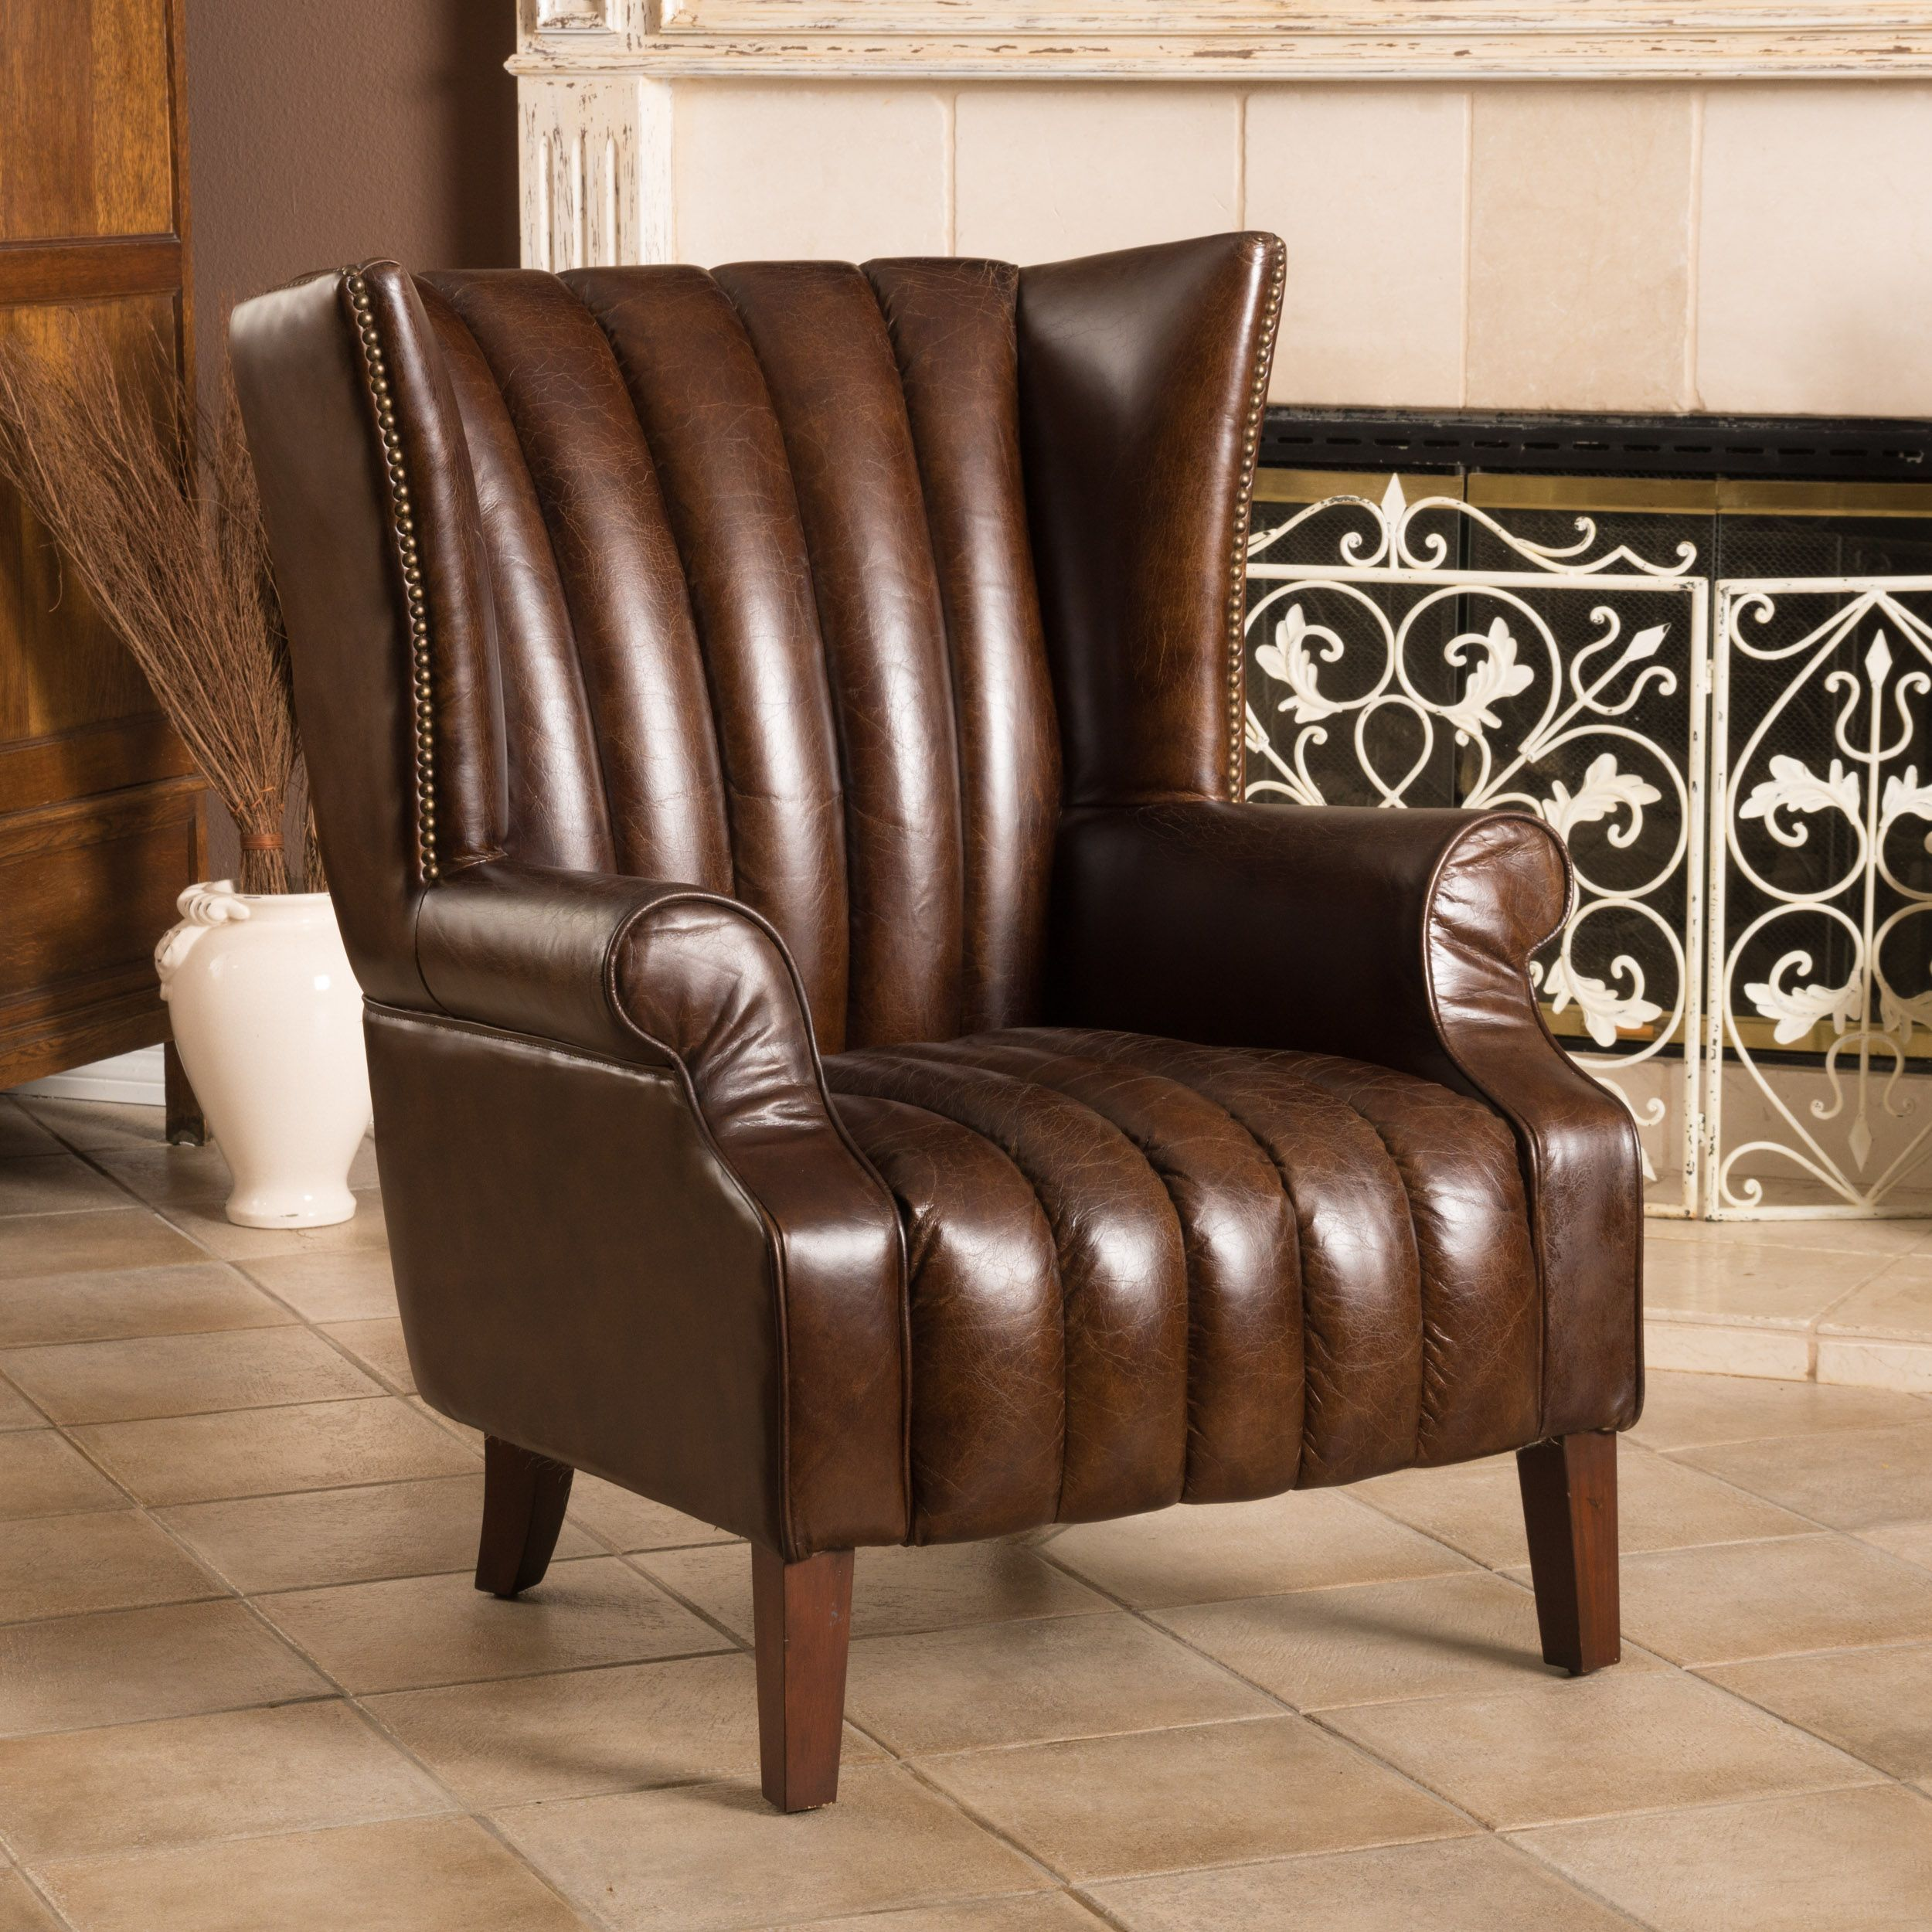 Warner Bonded Leather High Back Chairchristopher Knight Home Captivating High Back Living Room Chair Design Inspiration